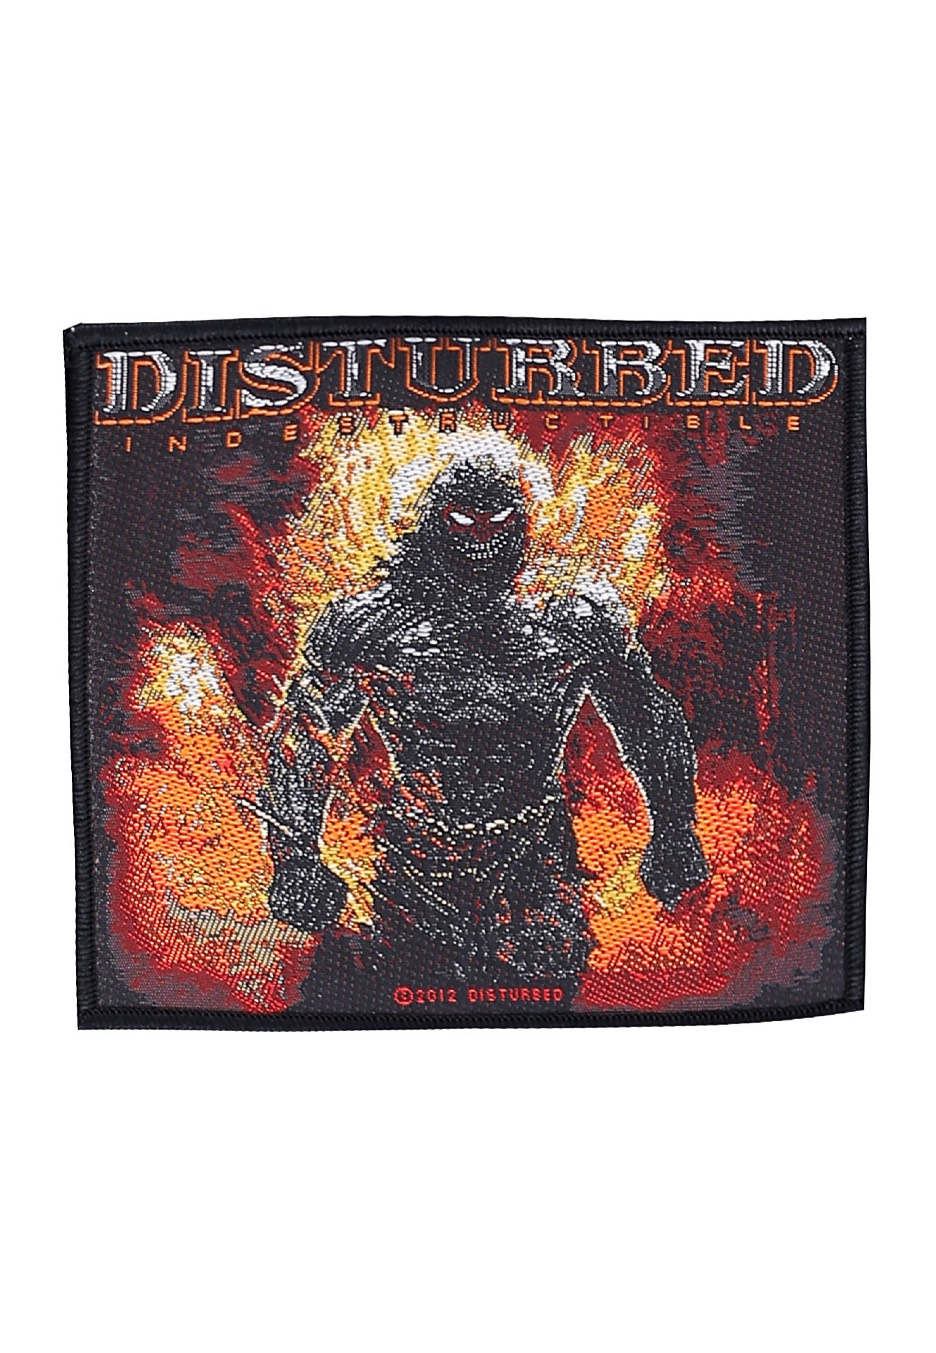 Disturbed Download 2016 Embroidered Cloth Patch